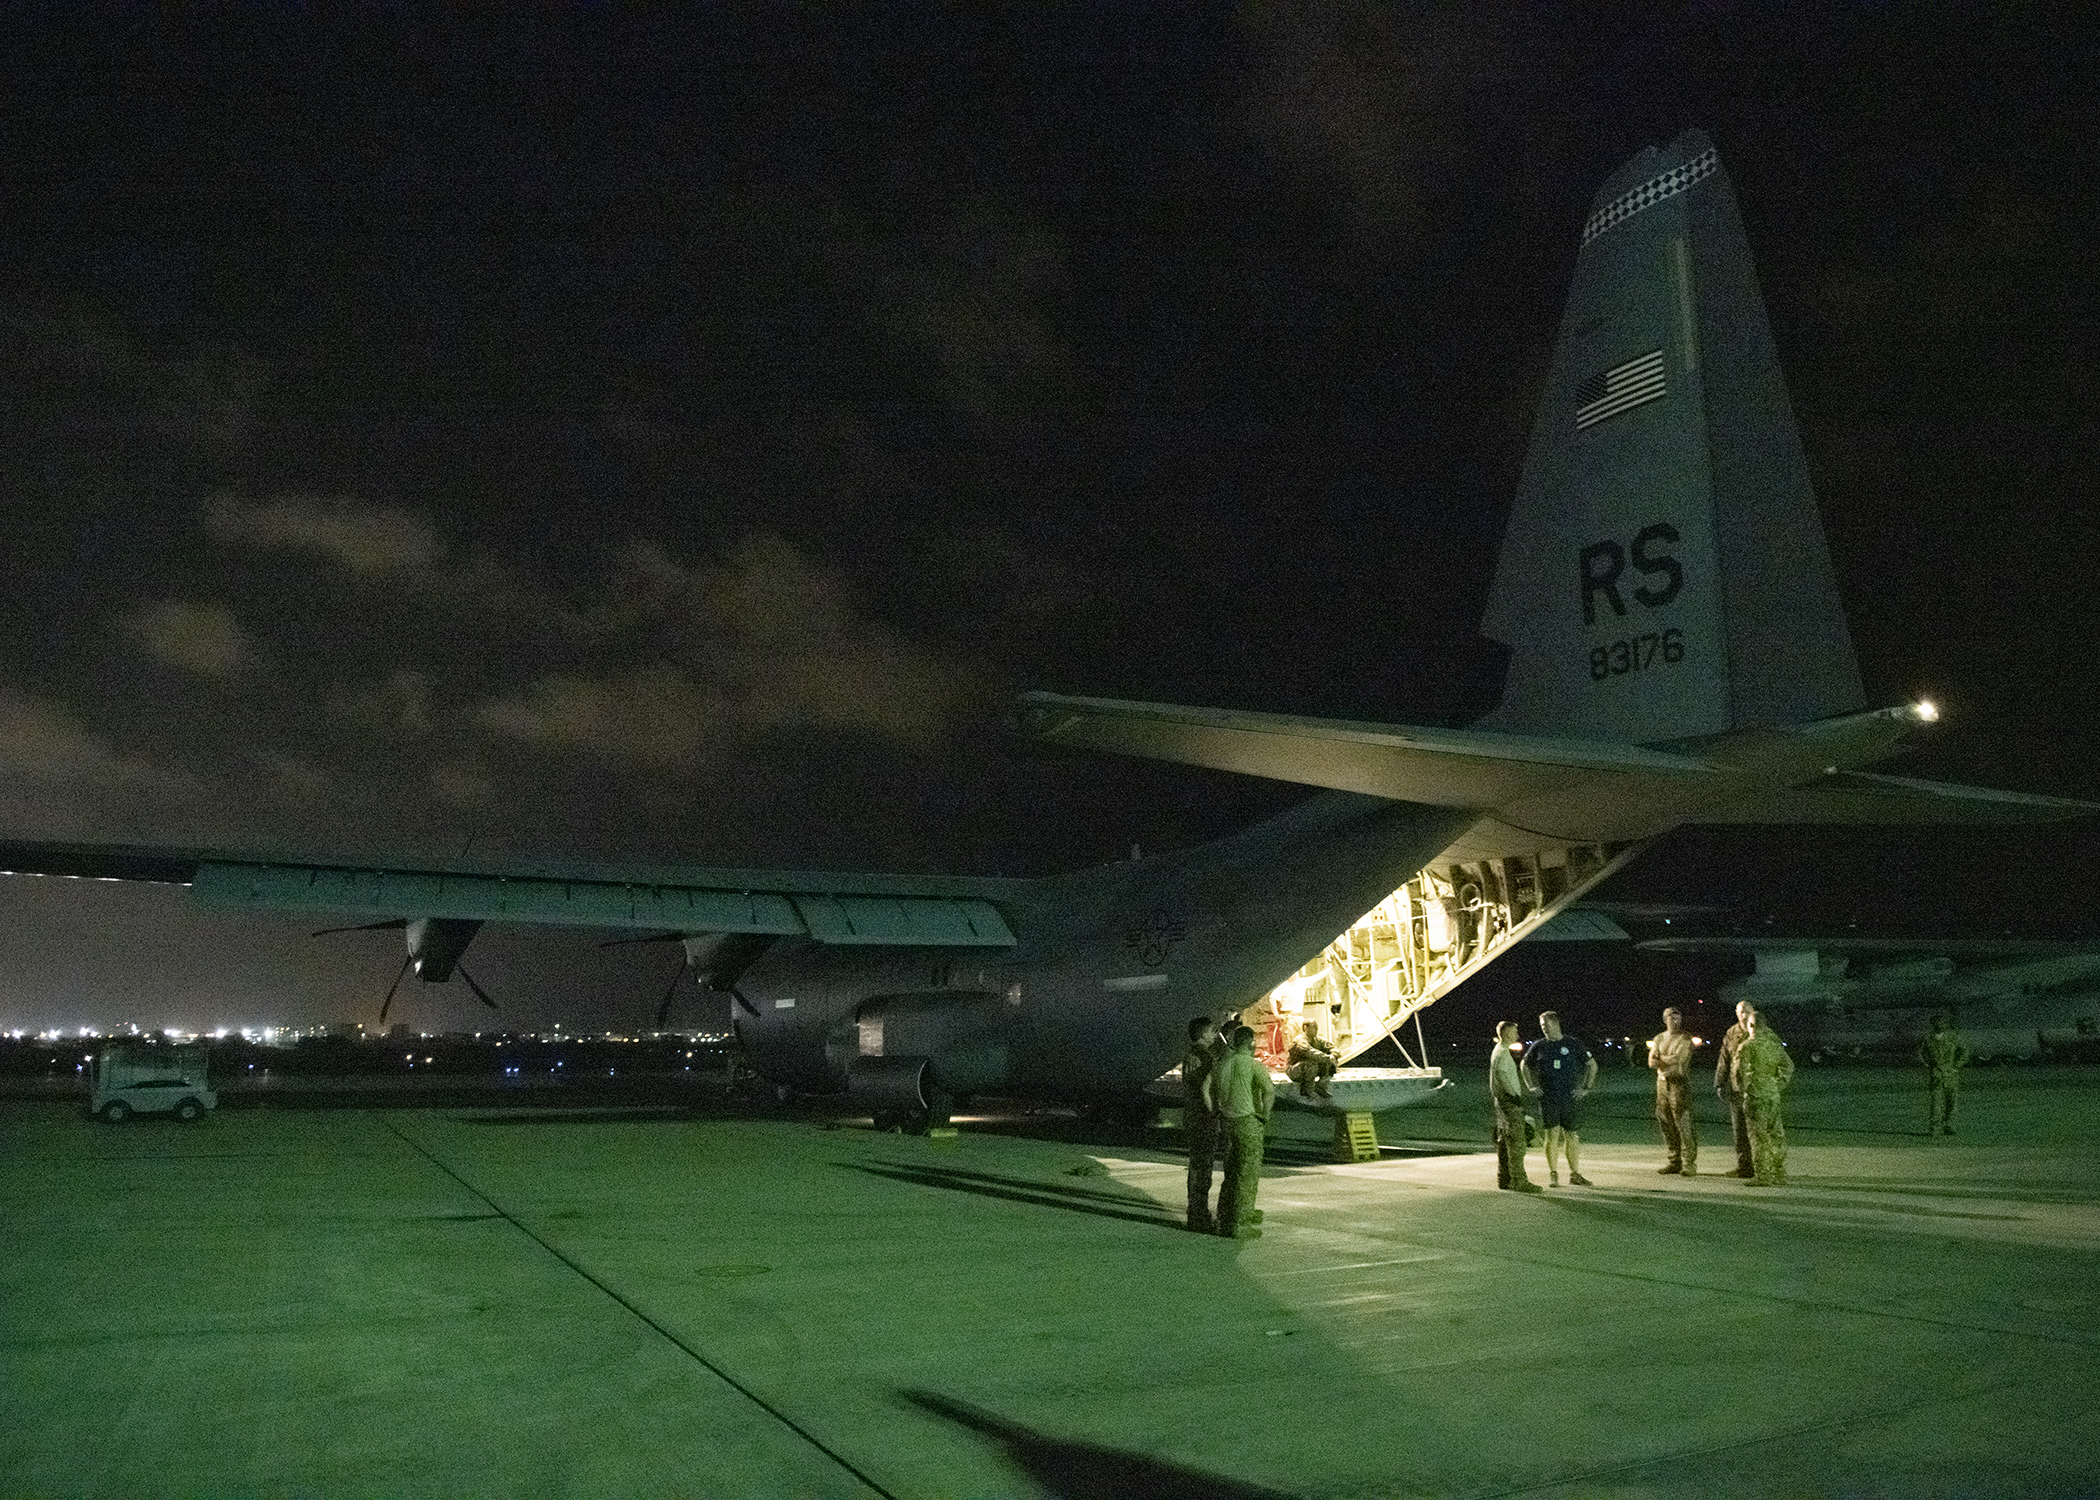 Service members assigned to Combined Joint Task Force-Horn of Africa (CJTF-HOA) and U.S. Air Force C-130J Super Hercules aircrew members assigned to Ramstein Air Base, Germany, return to Camp Lemonnier, Djibouti, April 12, 2019, after supporting Cyclone Idai humanitarian relief efforts in Mozambique. CJTF-HOA personnel transported more than 782 metric tons of U.S. Government-provided humanitarian relief supplies to Cyclone-impacted areas in Mozambique. (U.S. Air Force photo by Tech. Sgt. Shawn Nickel)